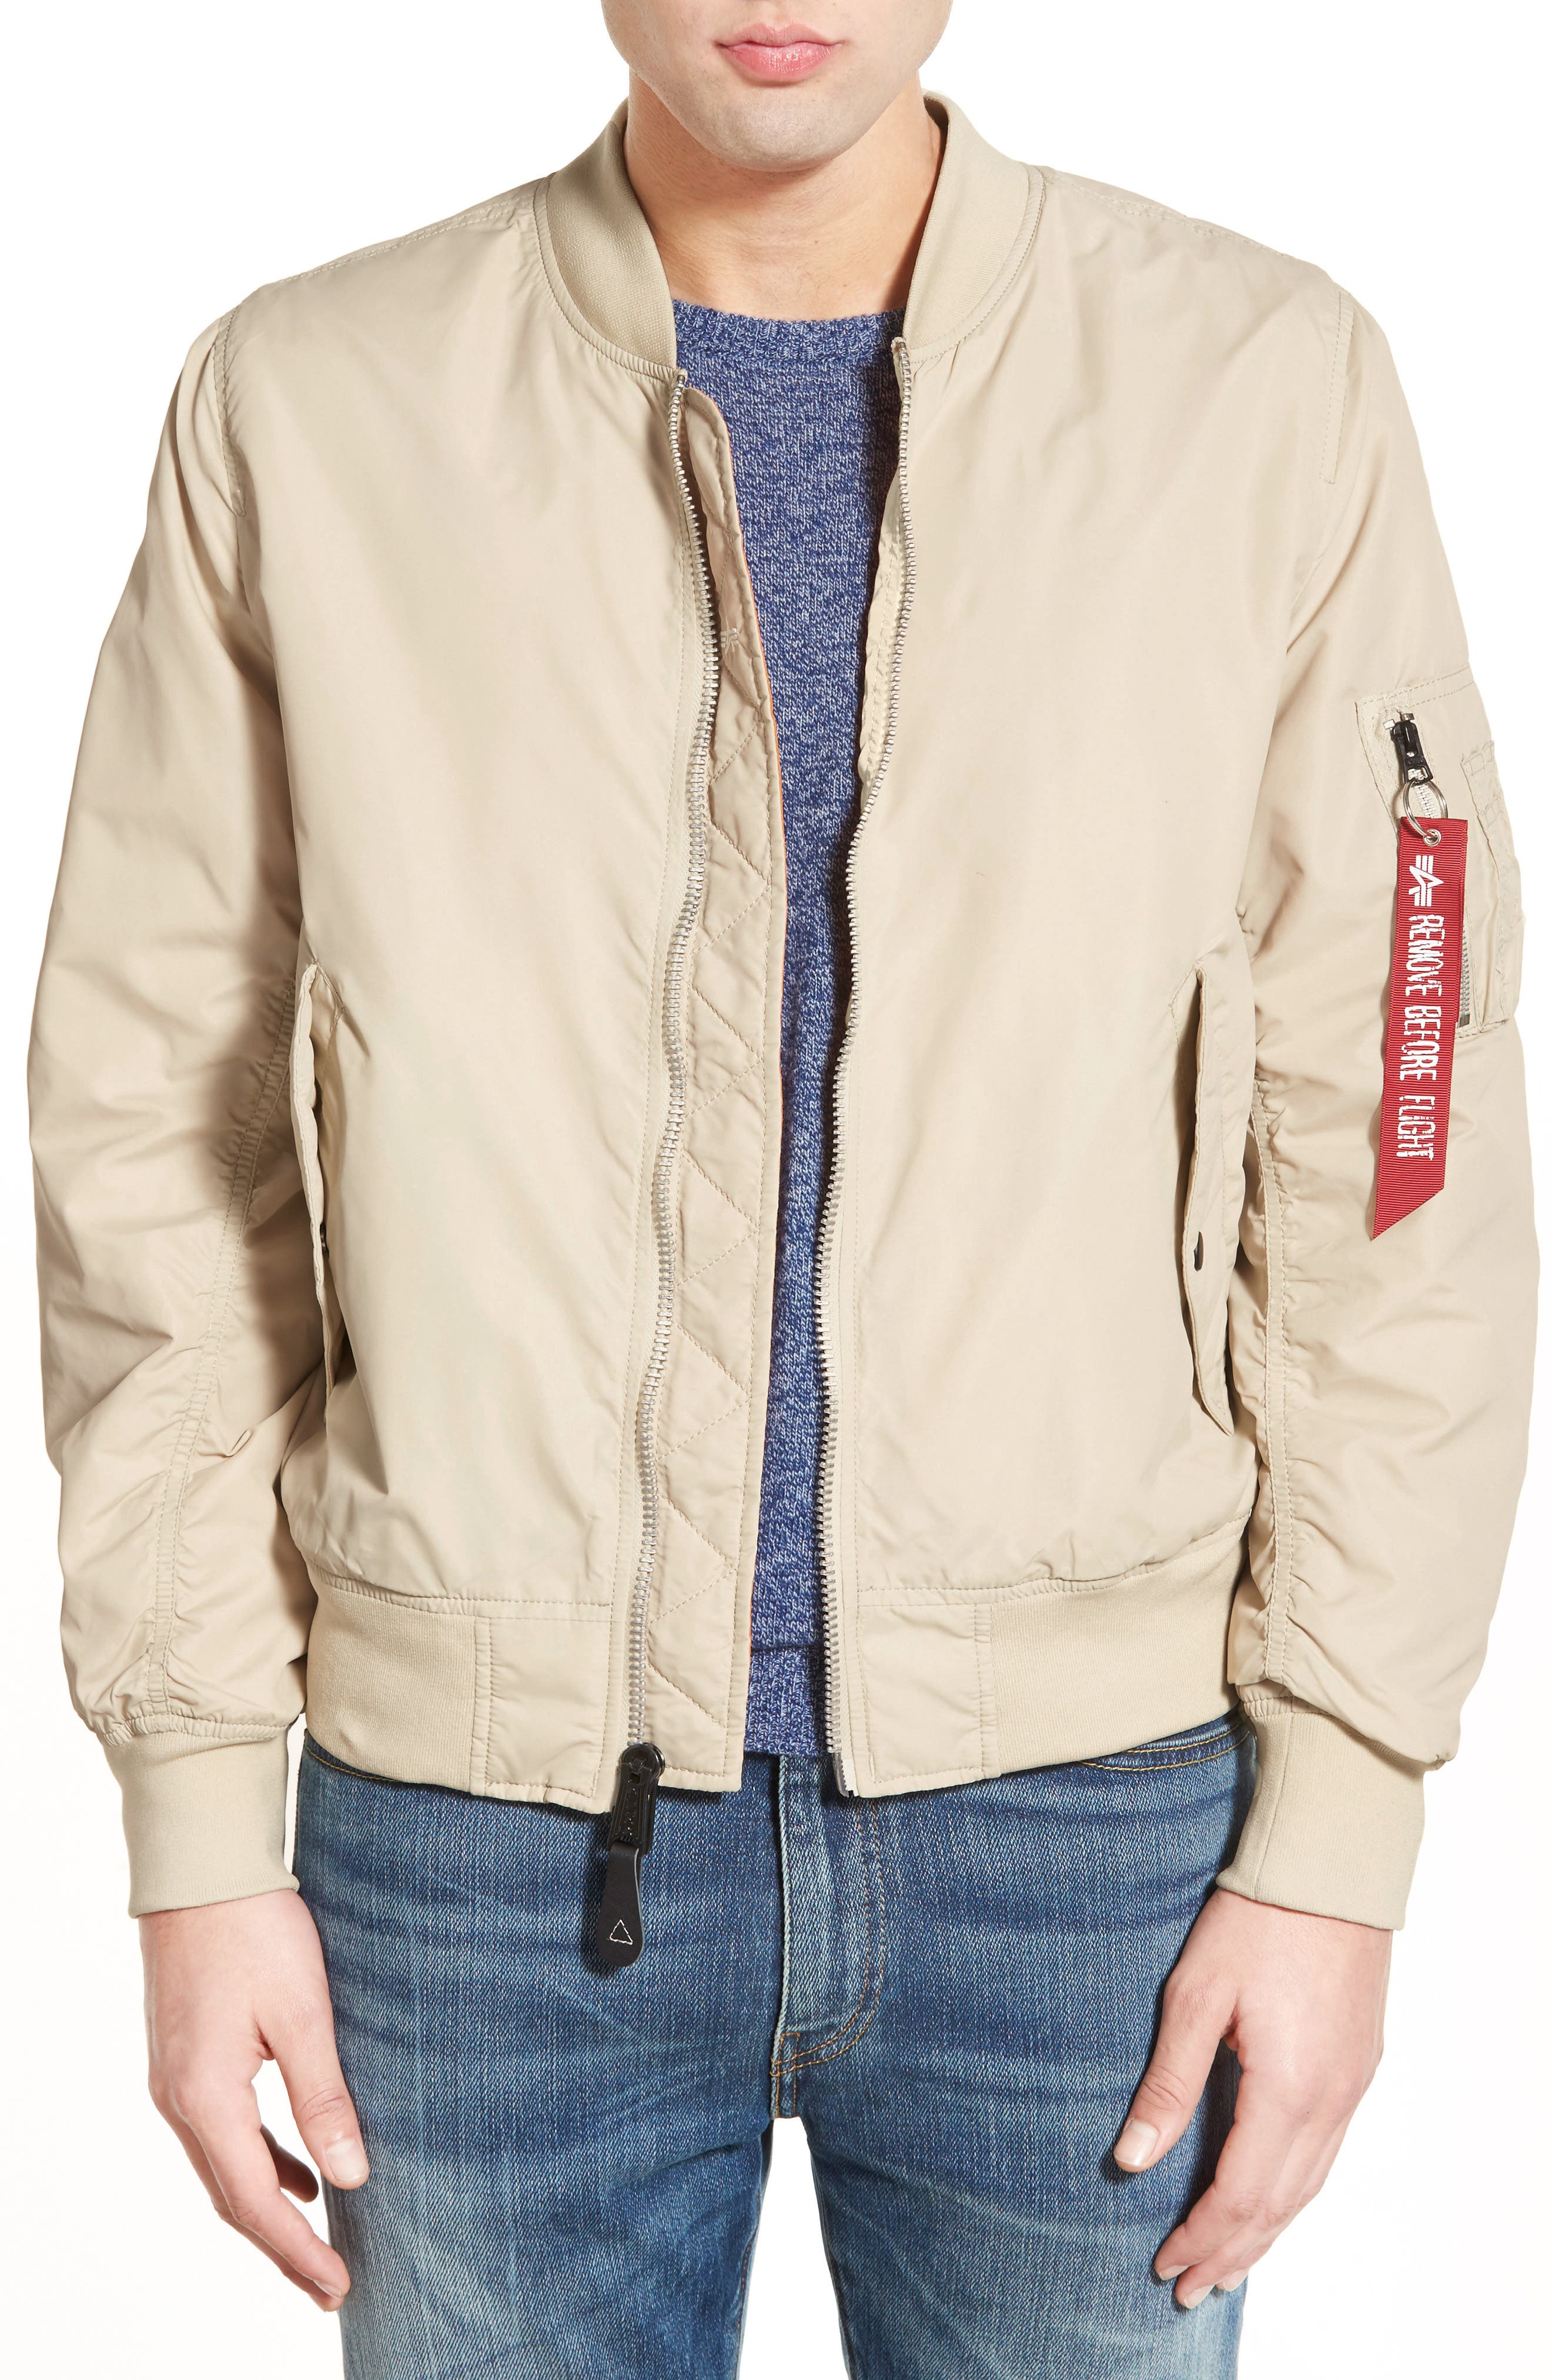 LB-2 Scout Reversible Flight Jacket,                             Alternate thumbnail 20, color,